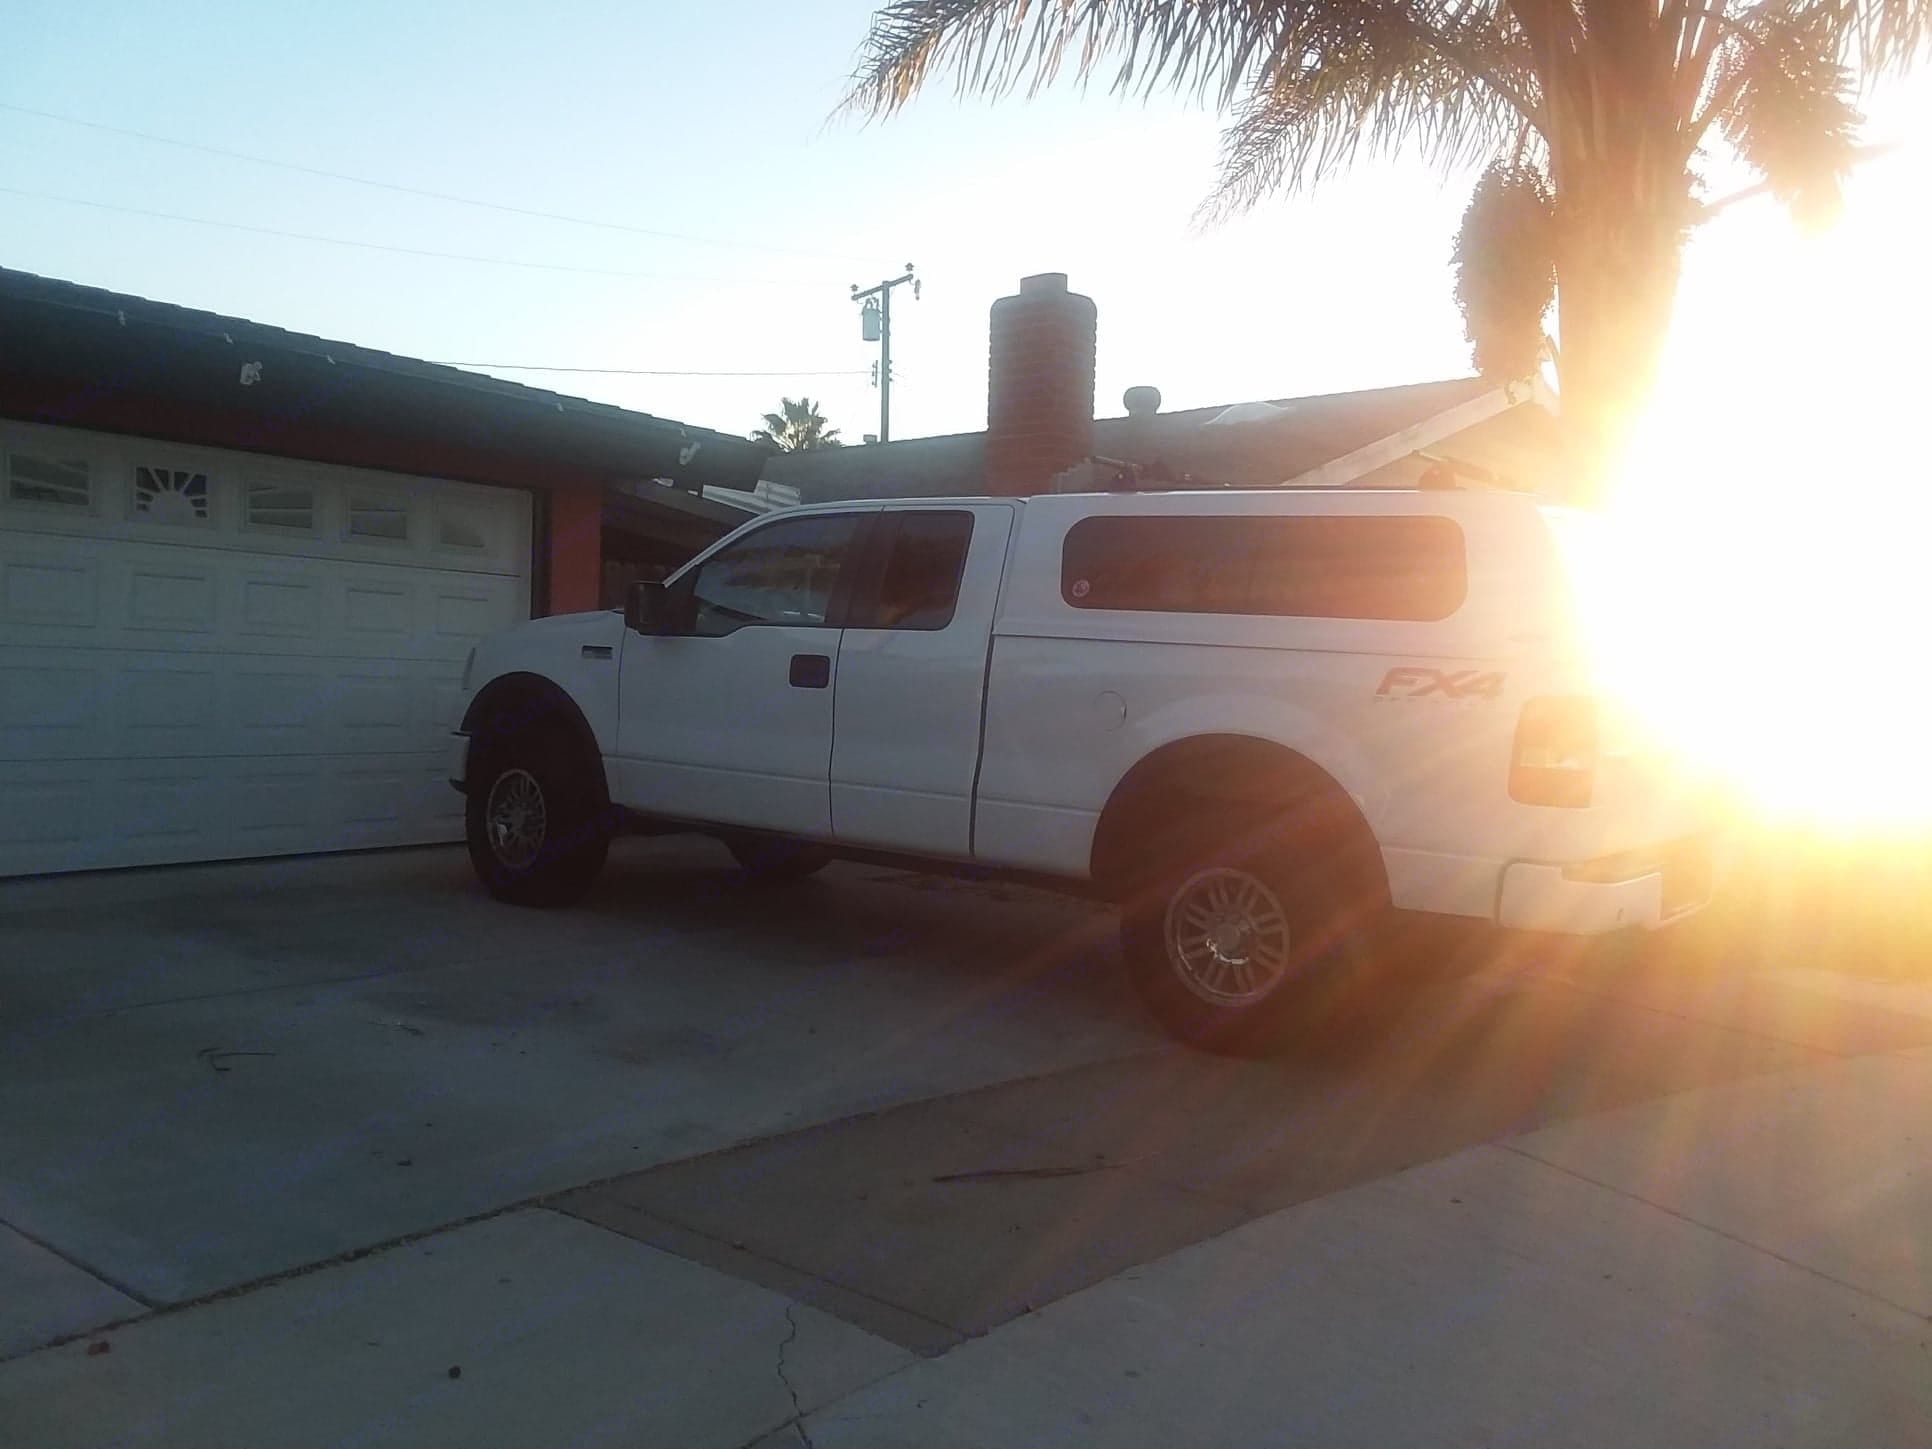 GO ON AN ADVENTURE, PARK AT SUNSET BEACH, SLEEP, FALL ASLEEP AND WAKE UP TO OCEAN WAVES.  DO NOT PAY TO PARK.  GO SNOWBOARDING IN MAMMOTH MOUNTAIN IN CONFIDENCE! HOLD ALL YOUR GEAR SAFELY.  . ford F150 FX4 2007